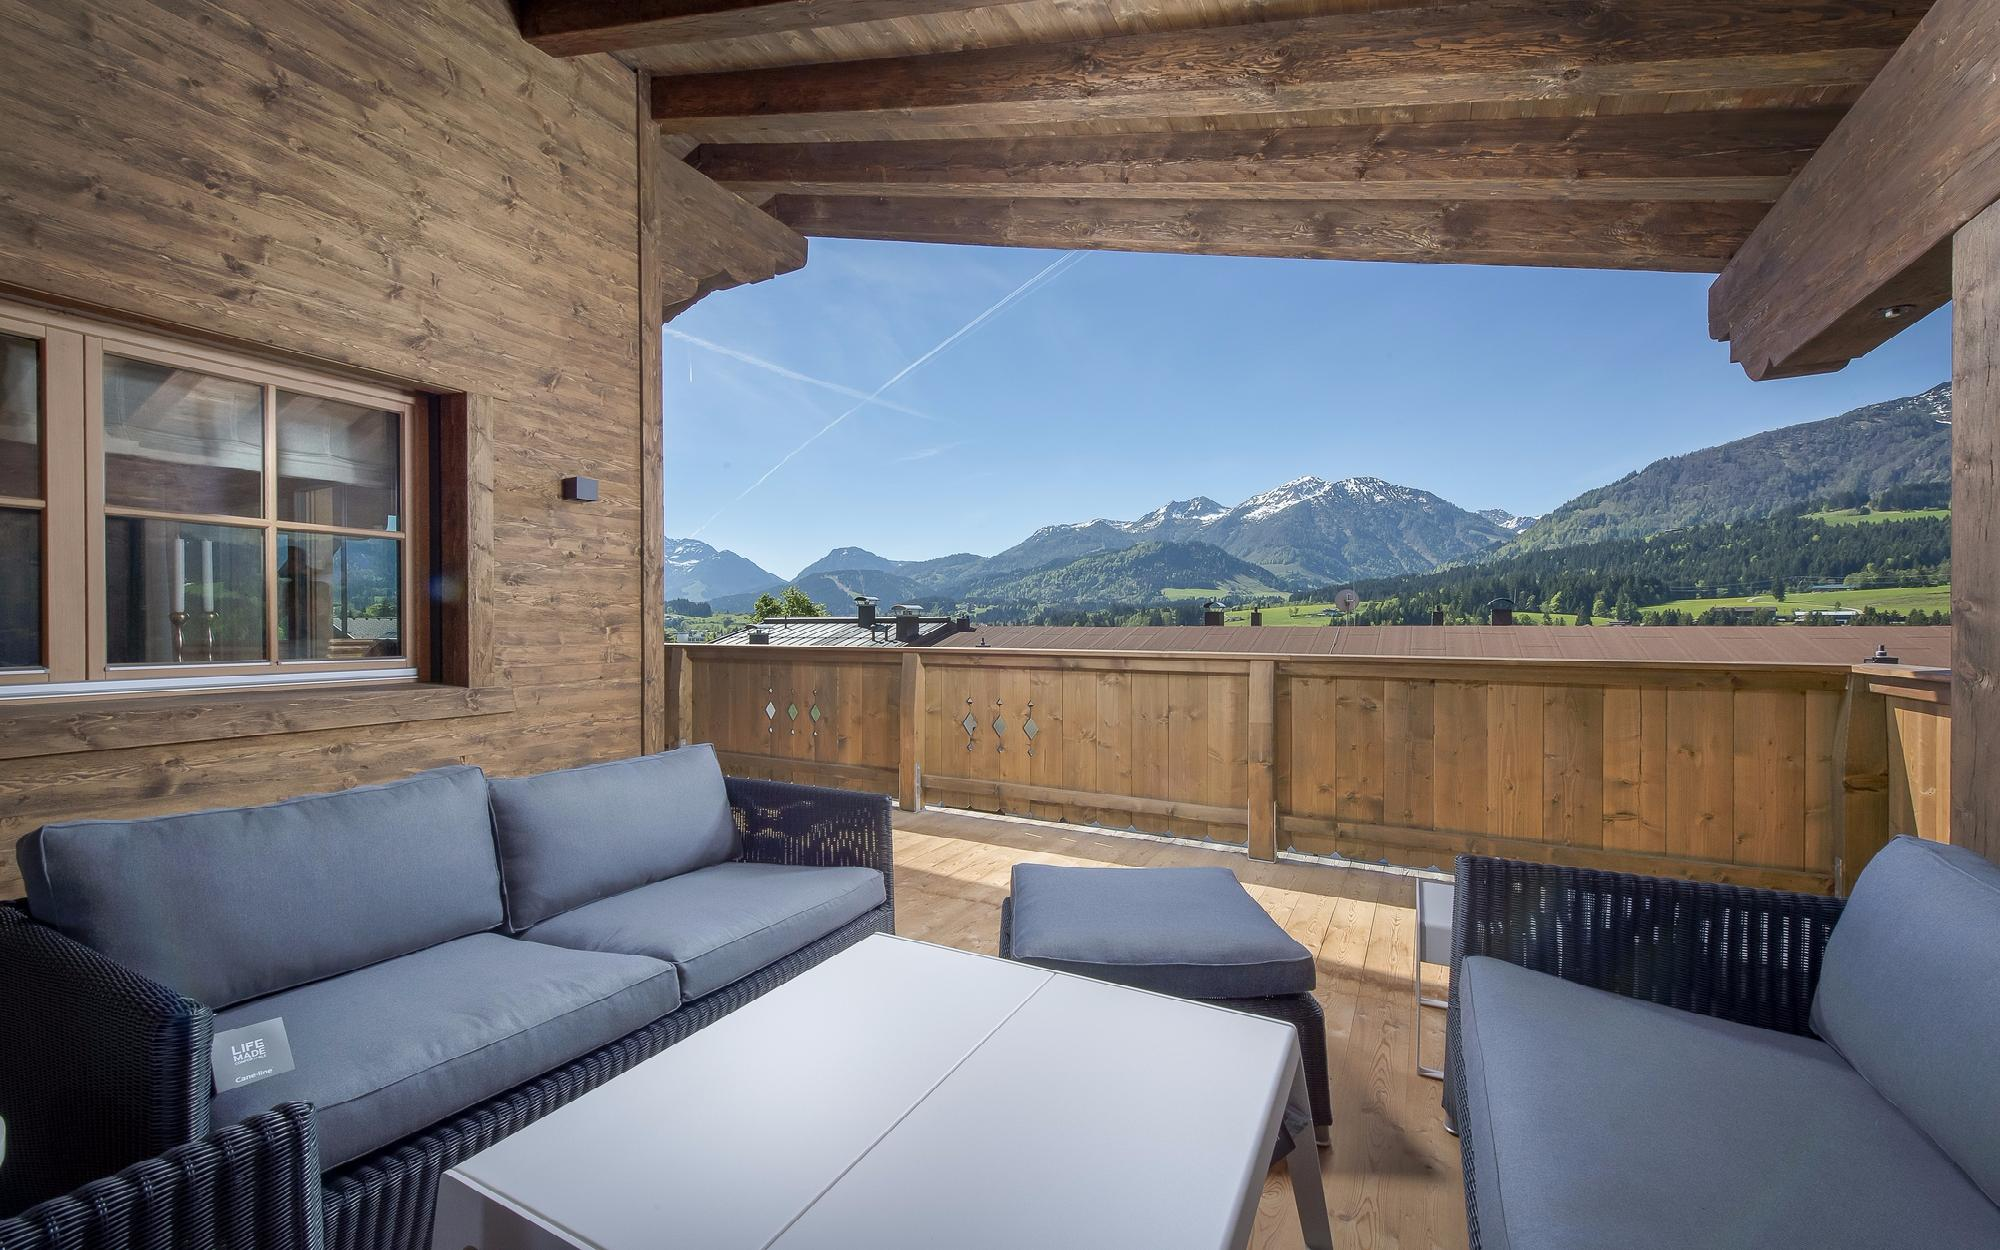 Furnished luxury chalets in a sunny location in Fieberbrunn